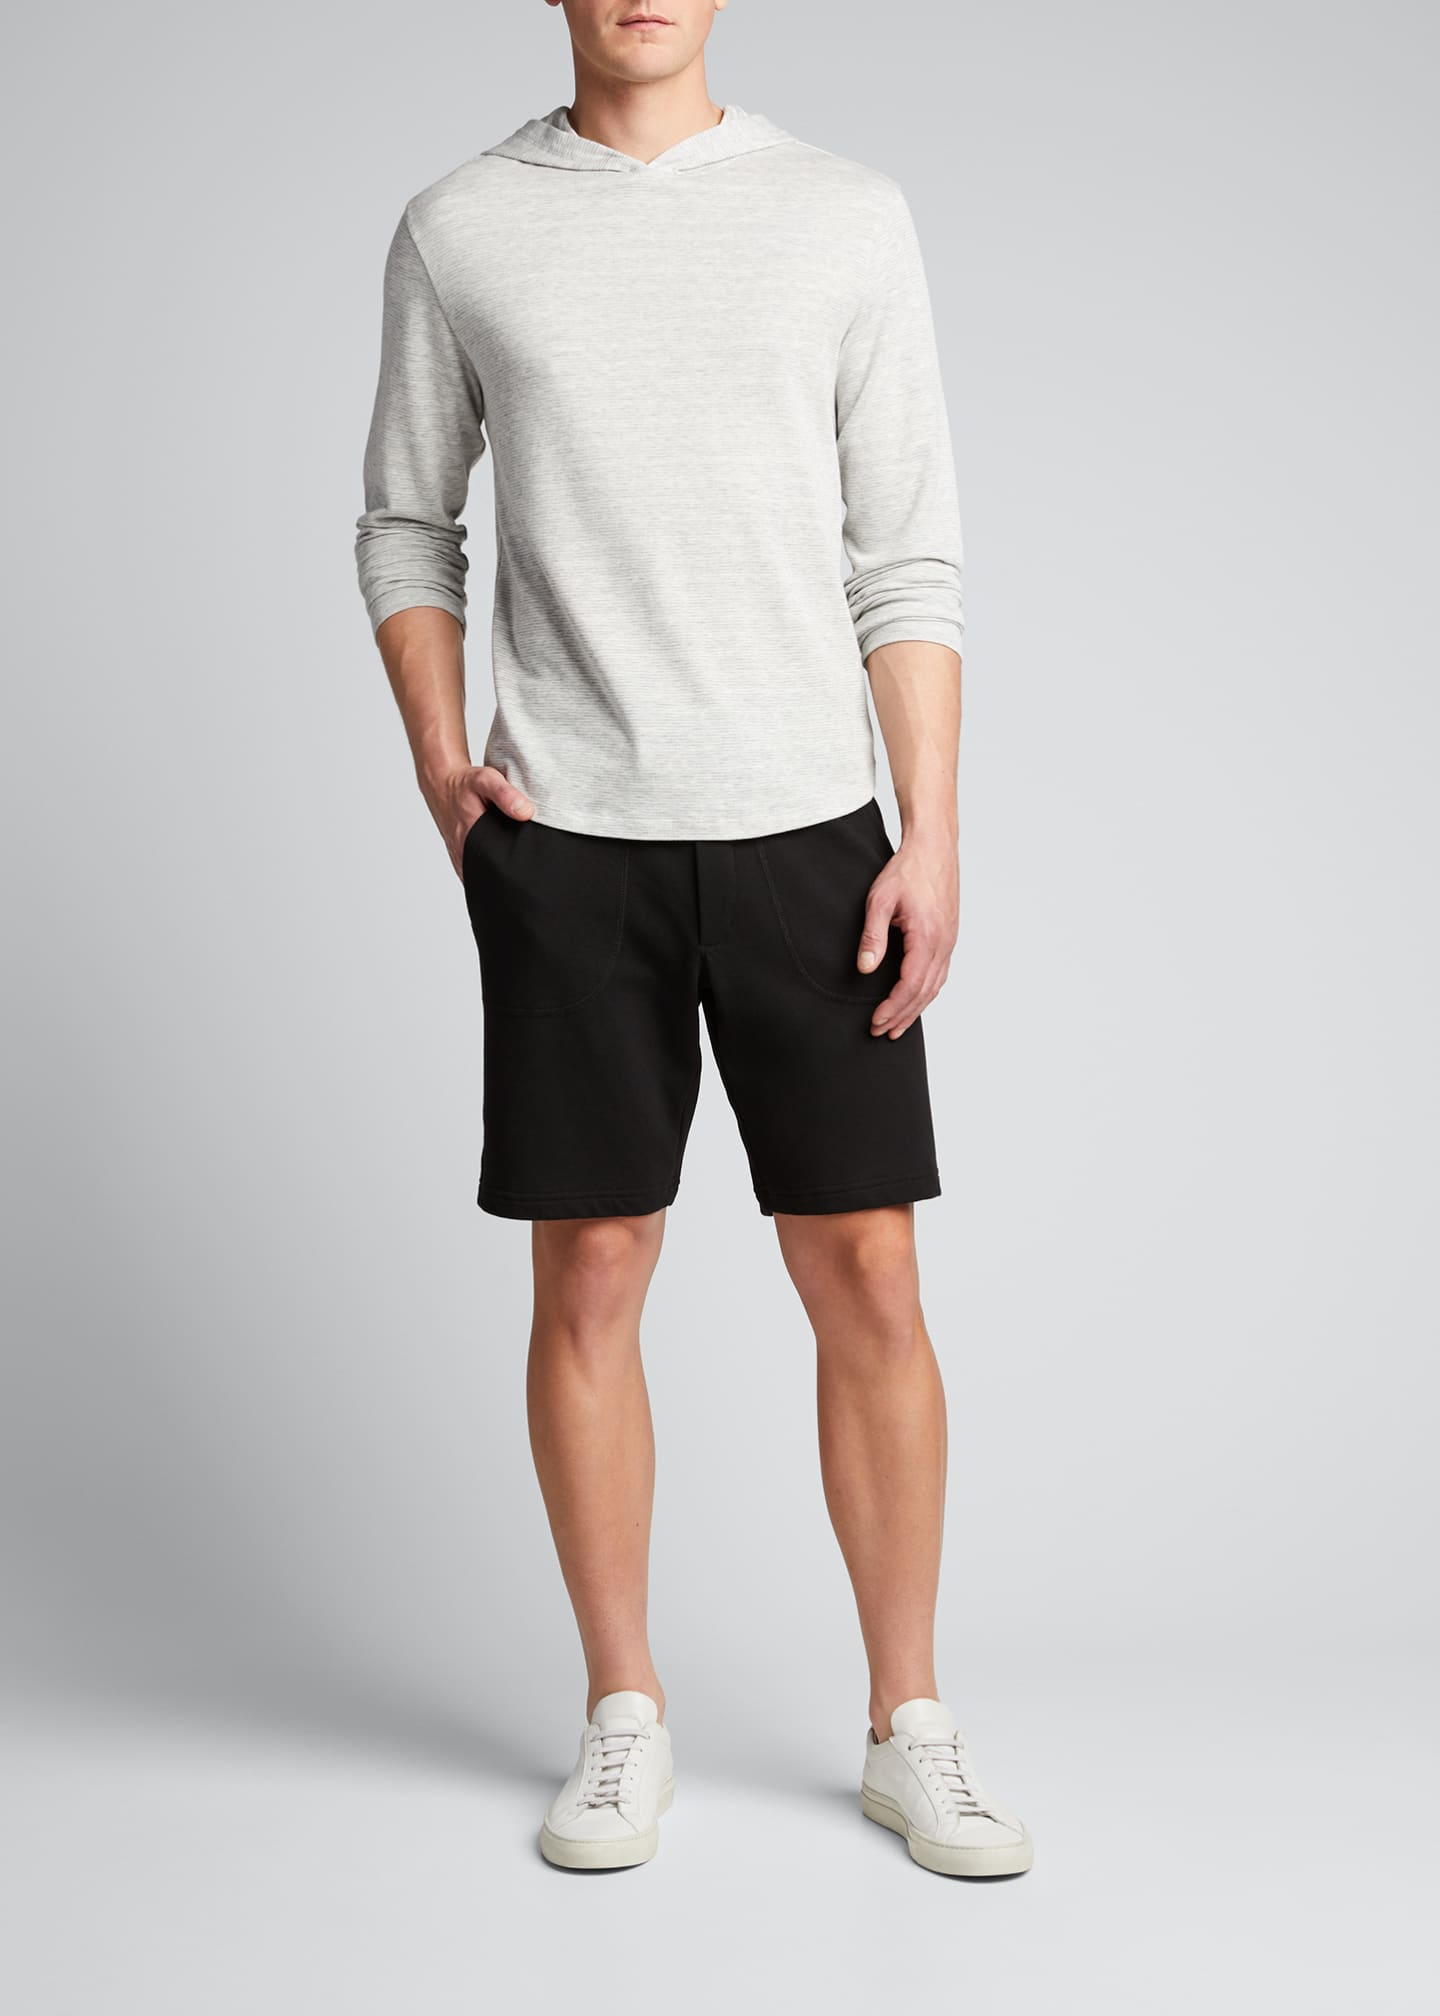 Image 1 of 5: Men's Garment-Dyed Drawstring Shorts